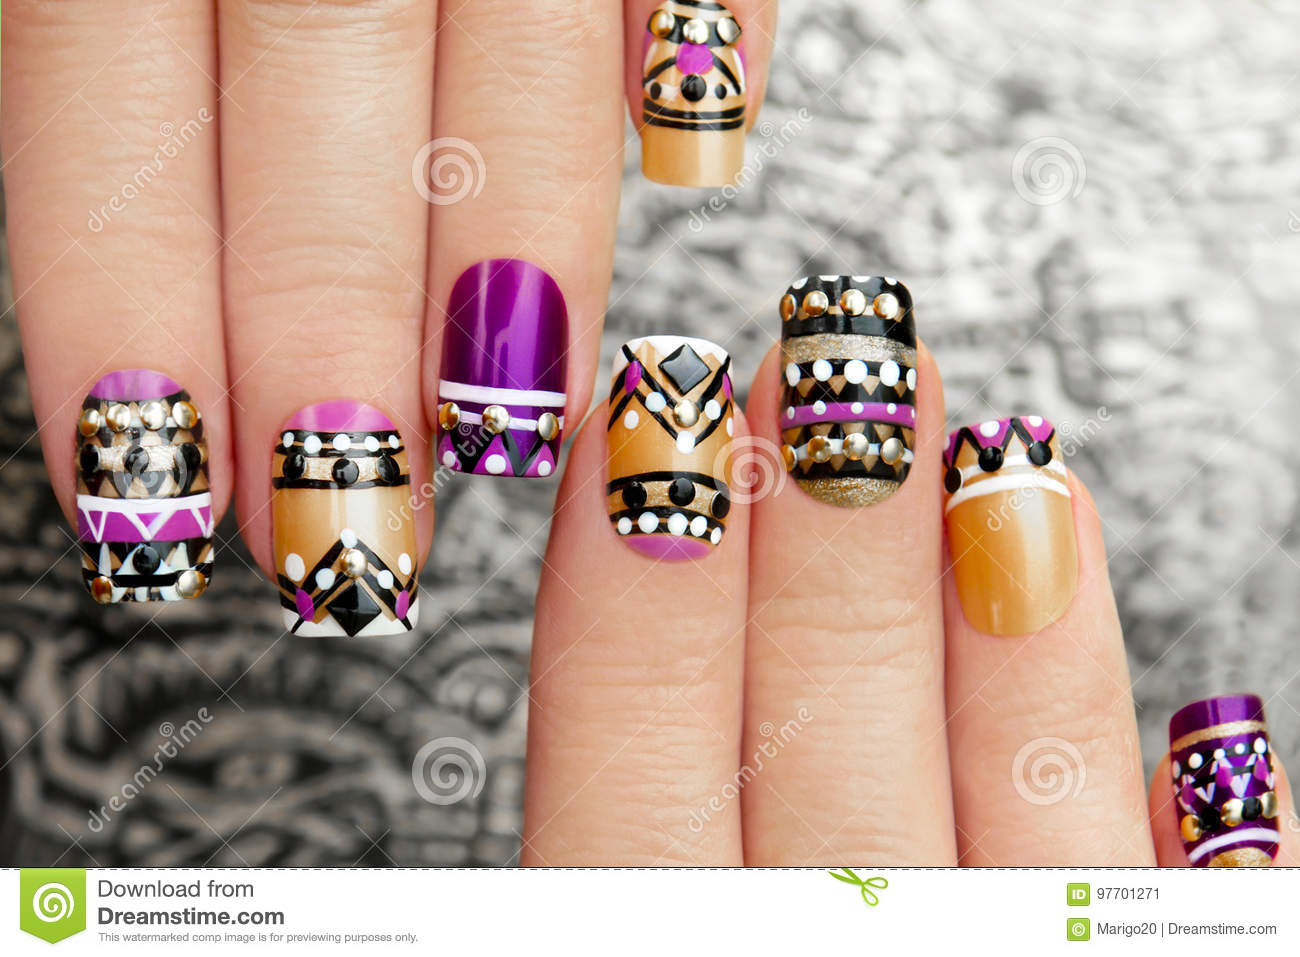 Manicure with colorful ethnic design.